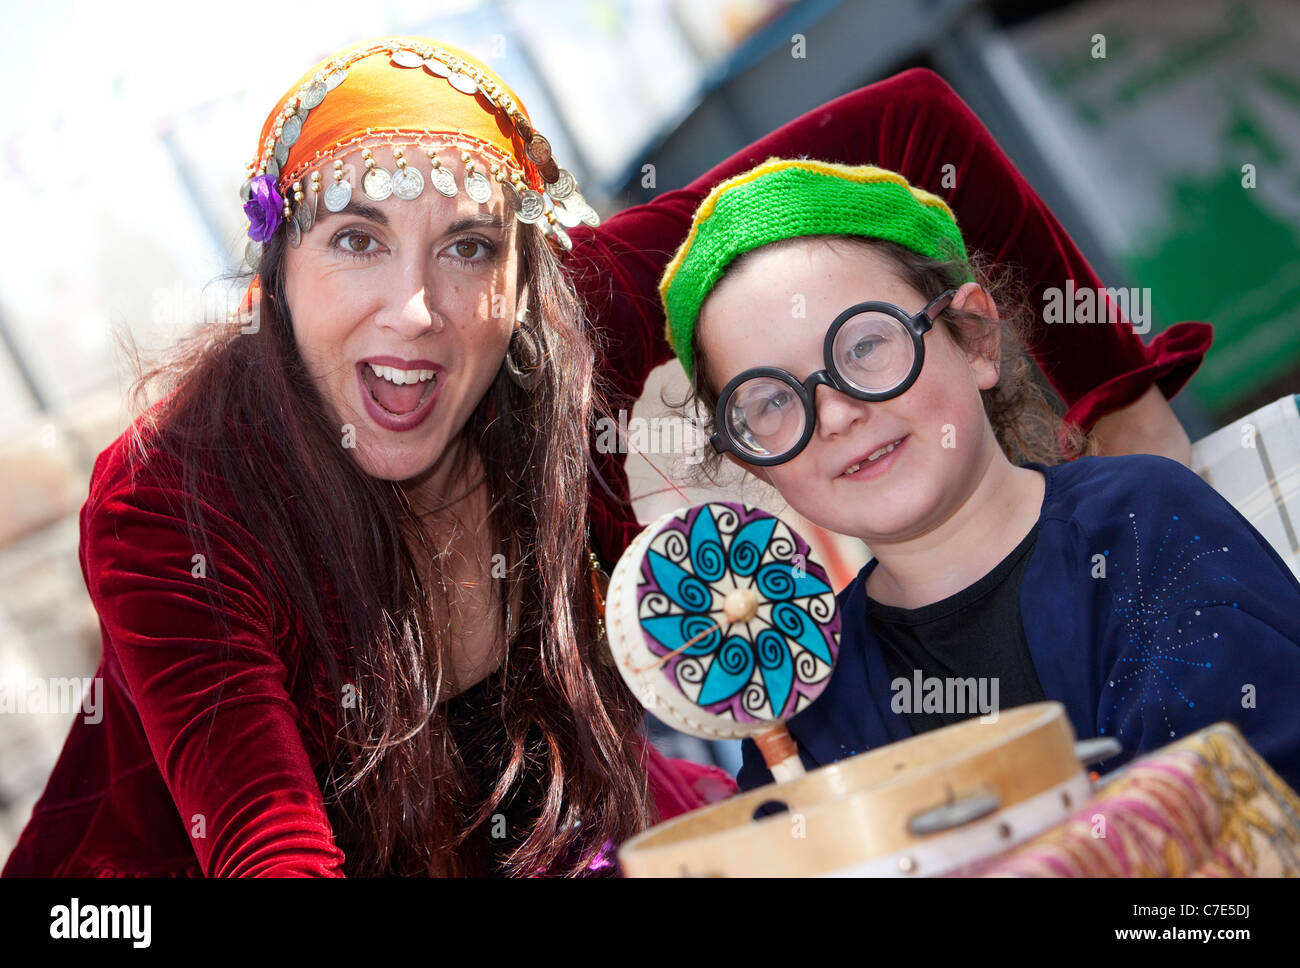 Fortune teller Rachel Hanaver with seven year-old Brooke Joseph at the Cardiff Bay Harbour Festival. - Stock Image